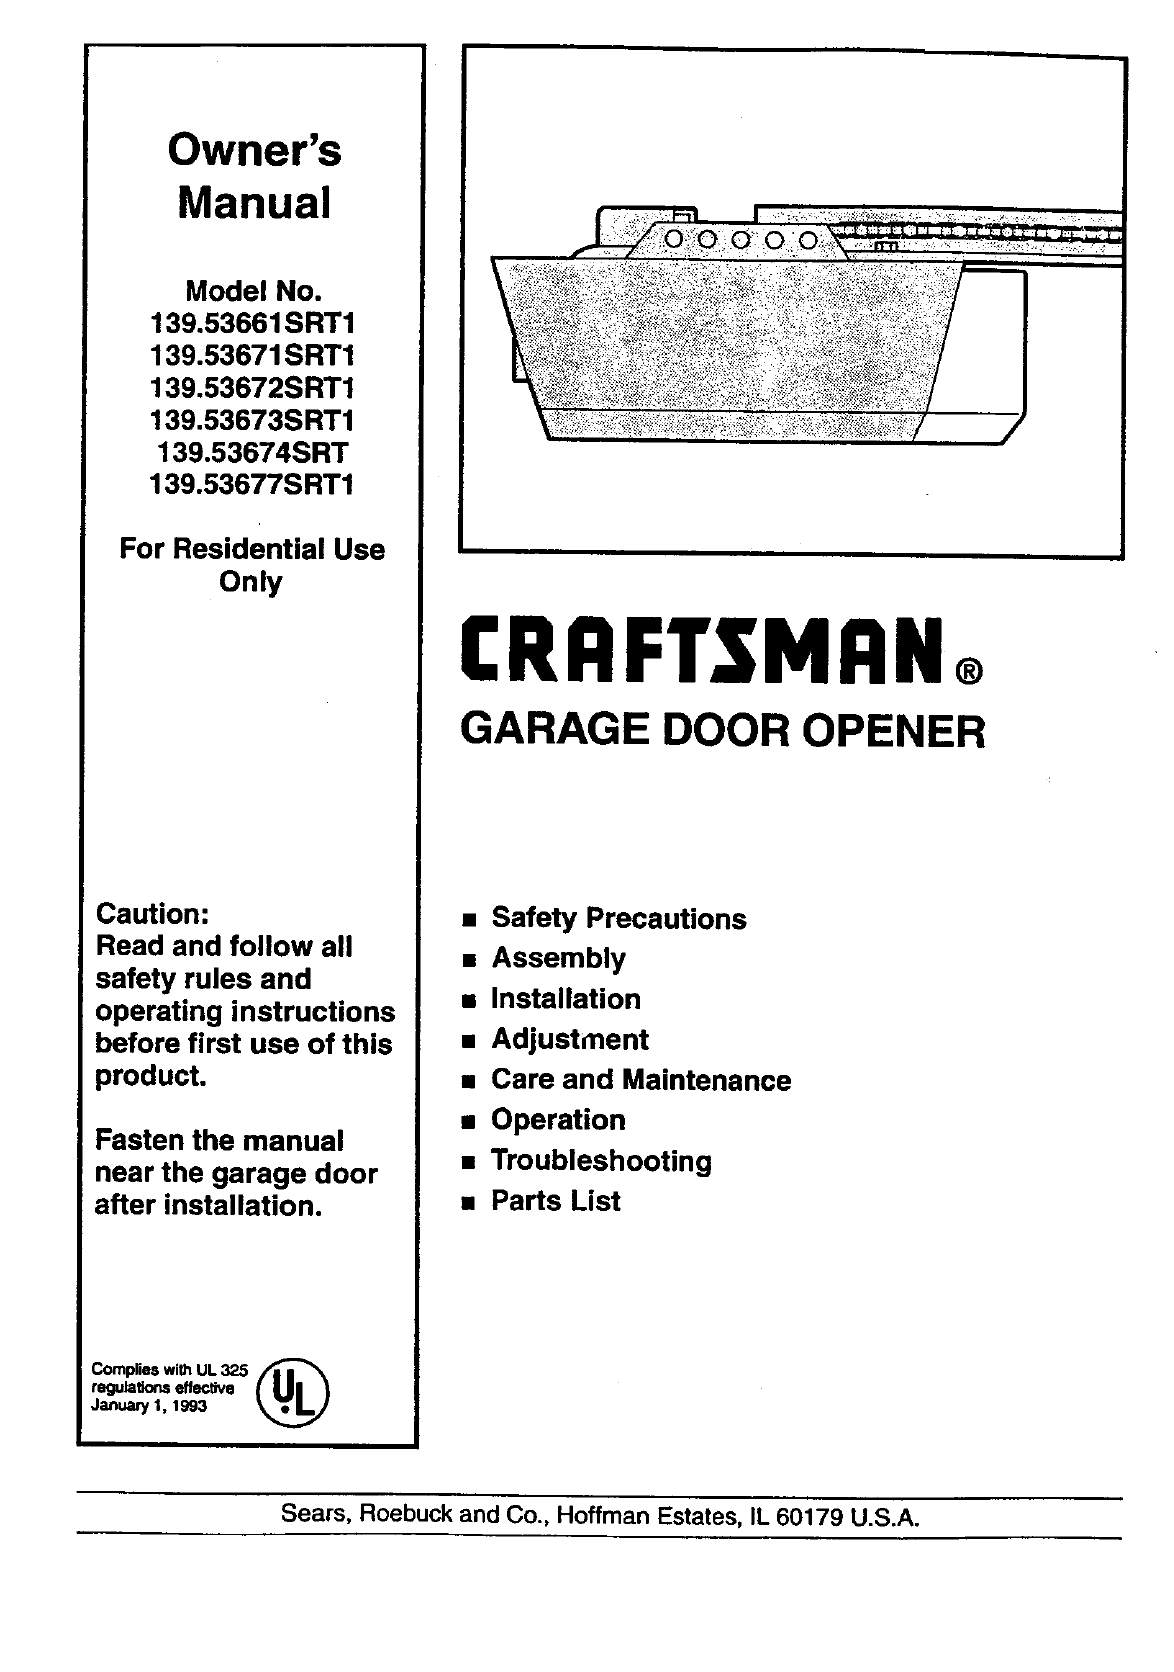 Craftsman garage door opener 13953674srt user guide craftsman garage door opener 13953674srt user guide manualsonline rubansaba